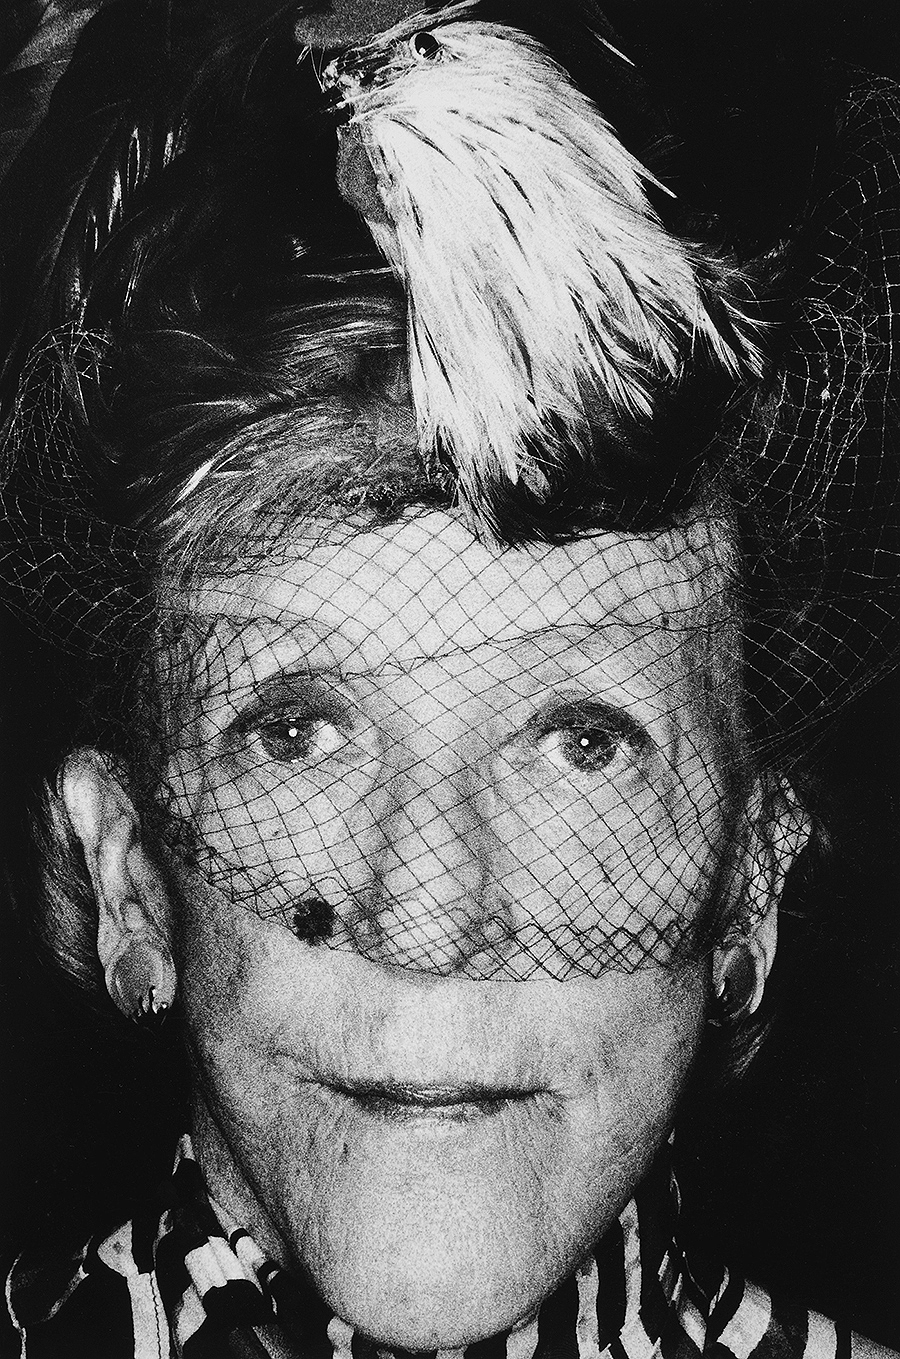 Tony_Ward_early_work_close_ups_1990's_ringflash_feathered_headress copy